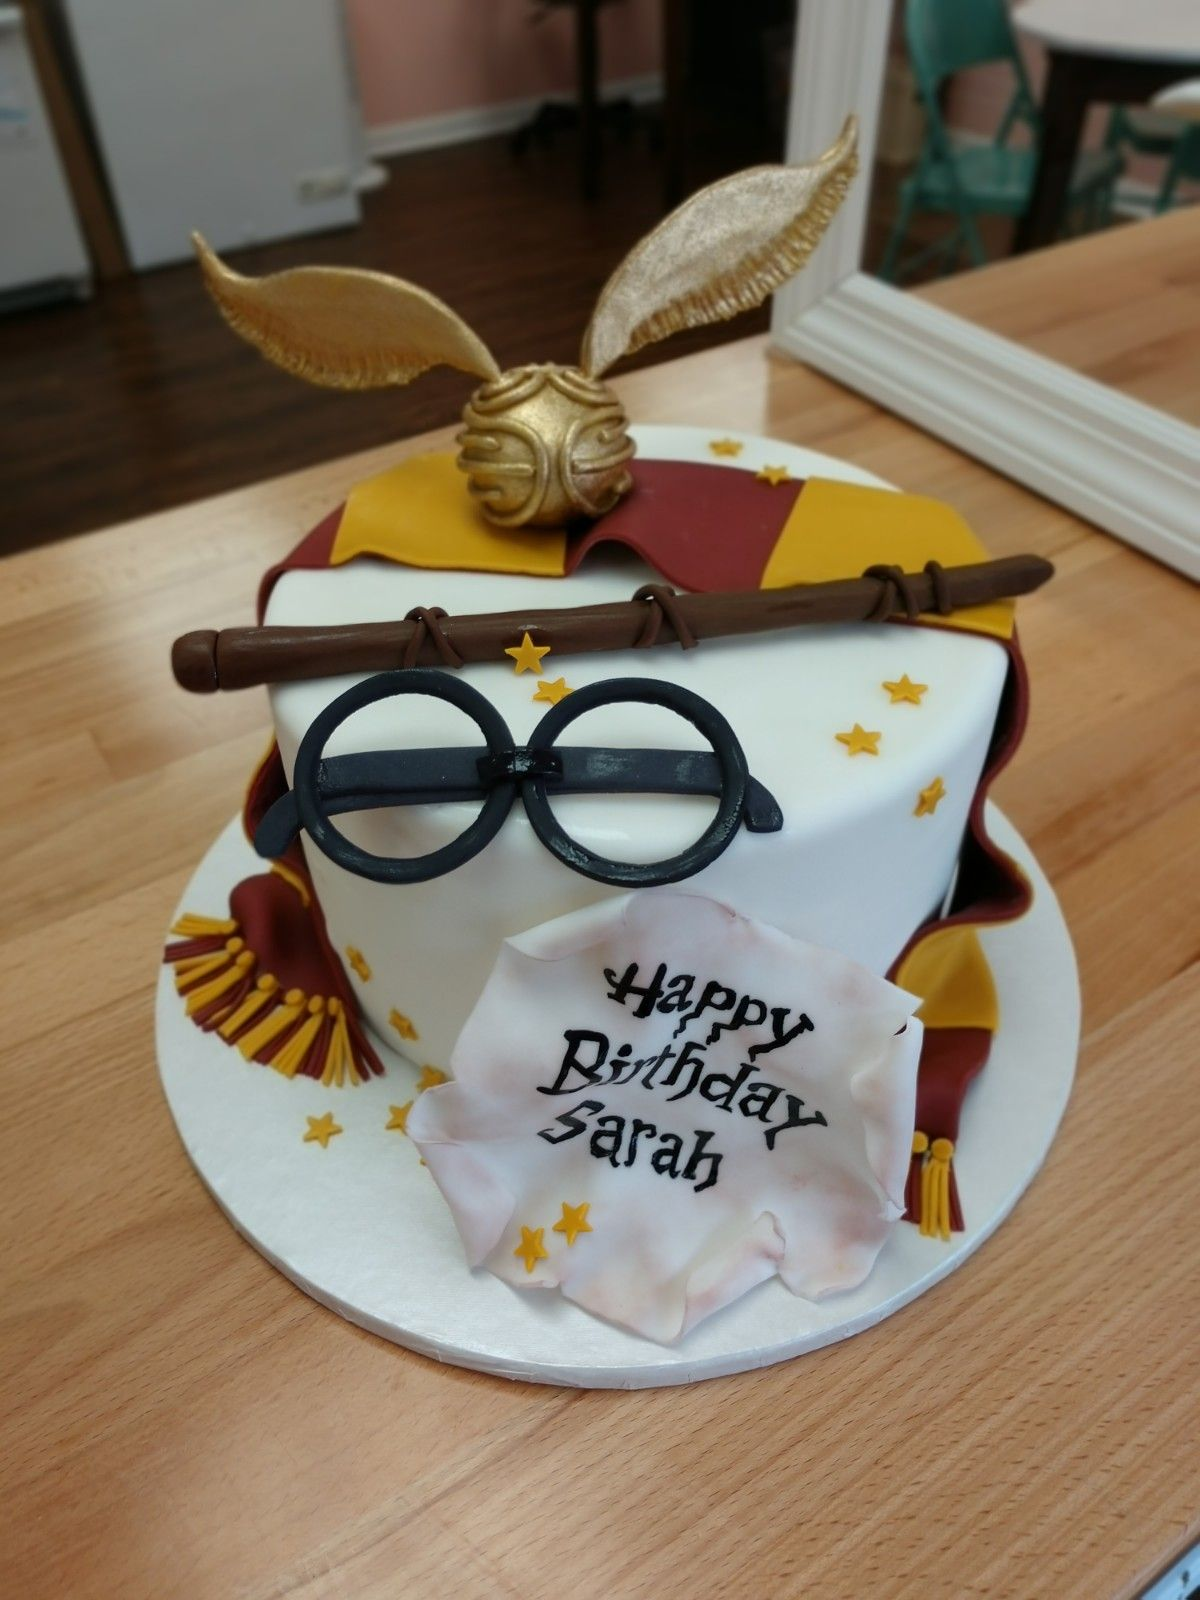 Remarkable Harry Potter Cake Golden Snitch Birthday Cake With Images Funny Birthday Cards Online Elaedamsfinfo